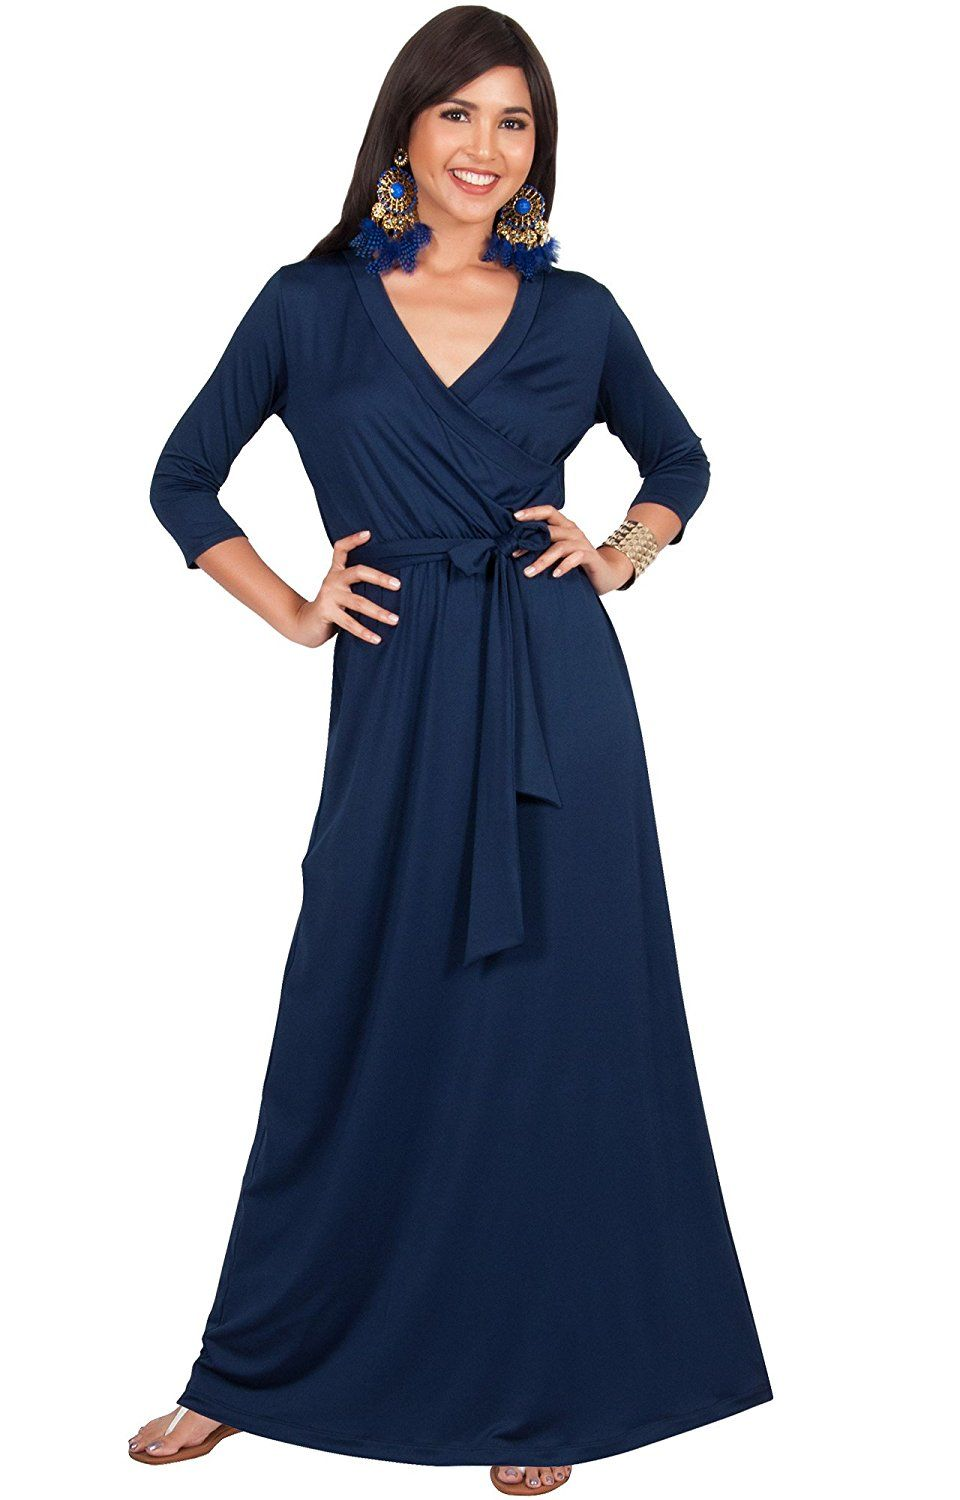 Koh koh womens long sleeve casual cocktail flowy vneck gown maxi